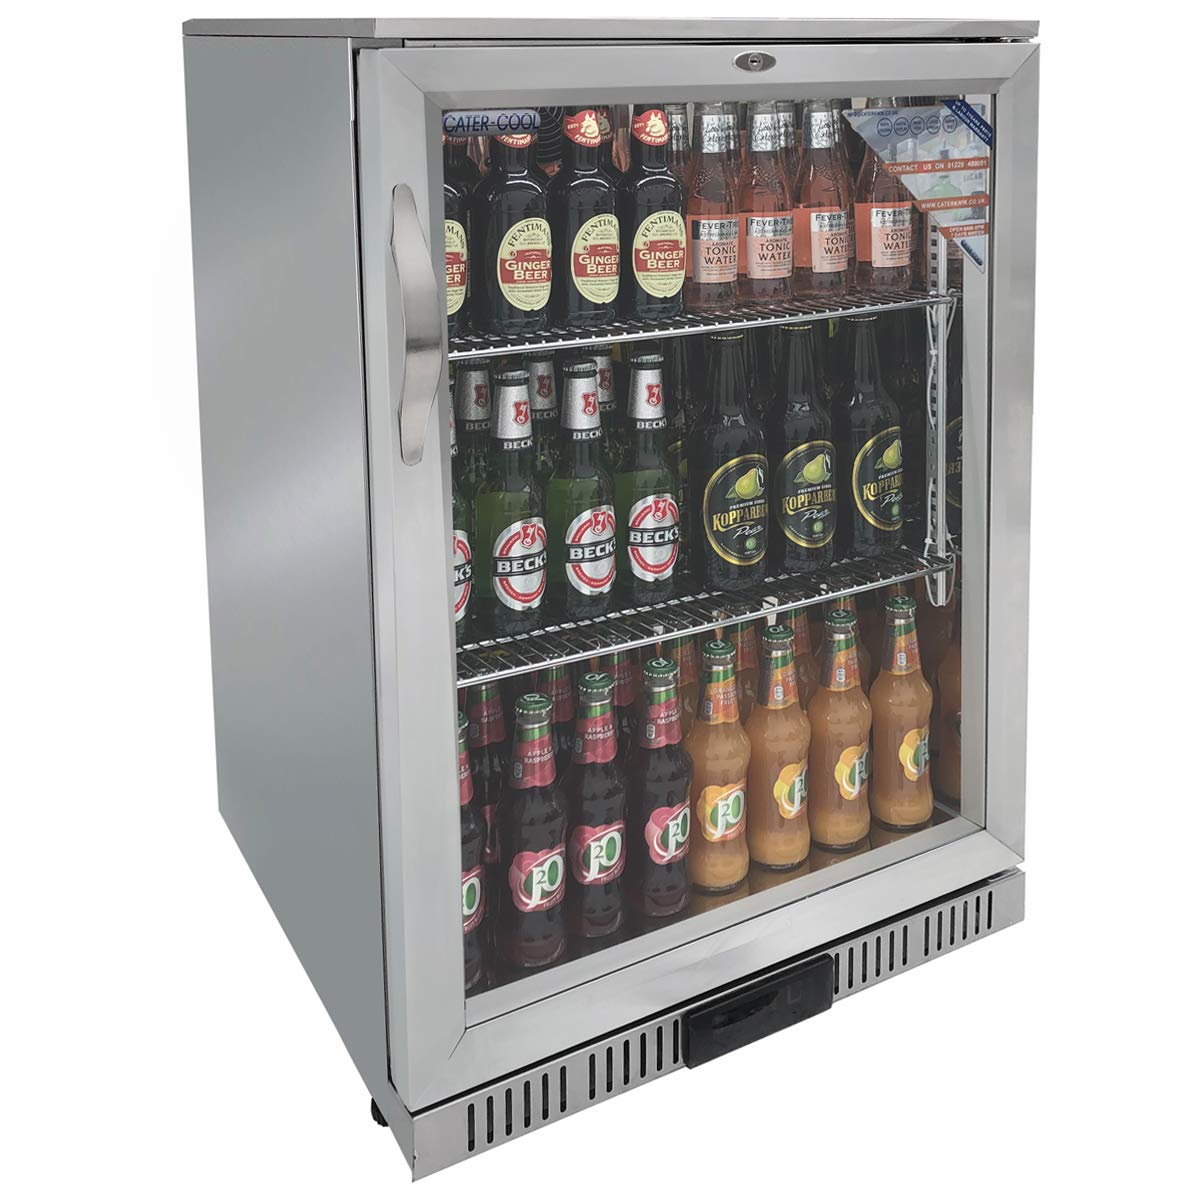 Cater-Cool CK3500LED Single Door Stainless Steel Bottle Cooler With LED Lighting